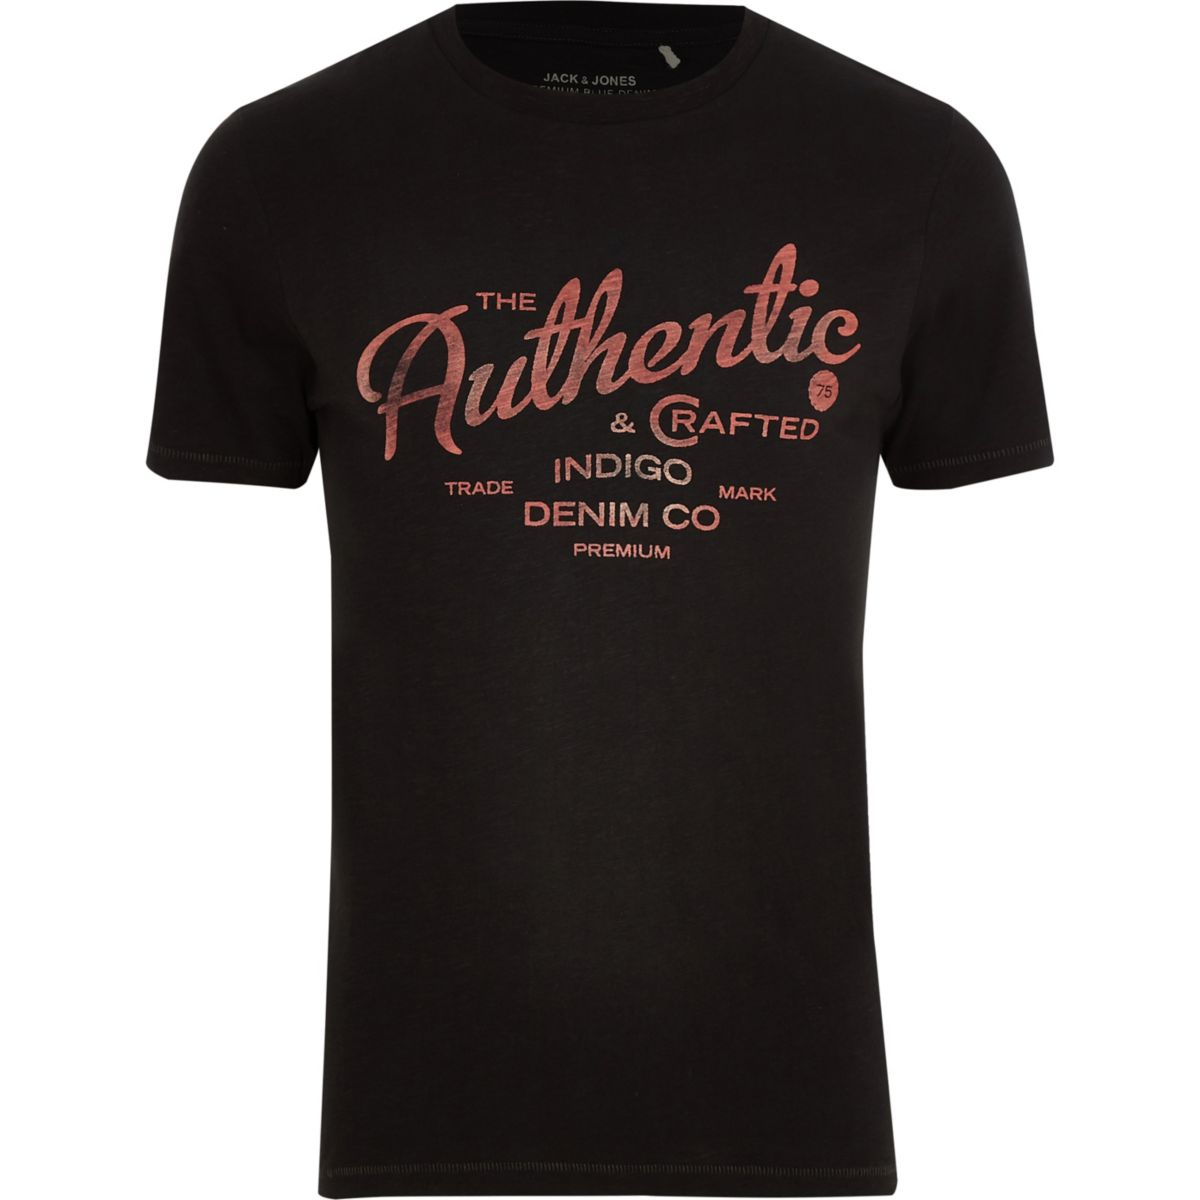 Jack & Jones black 'authentic' T-shirt